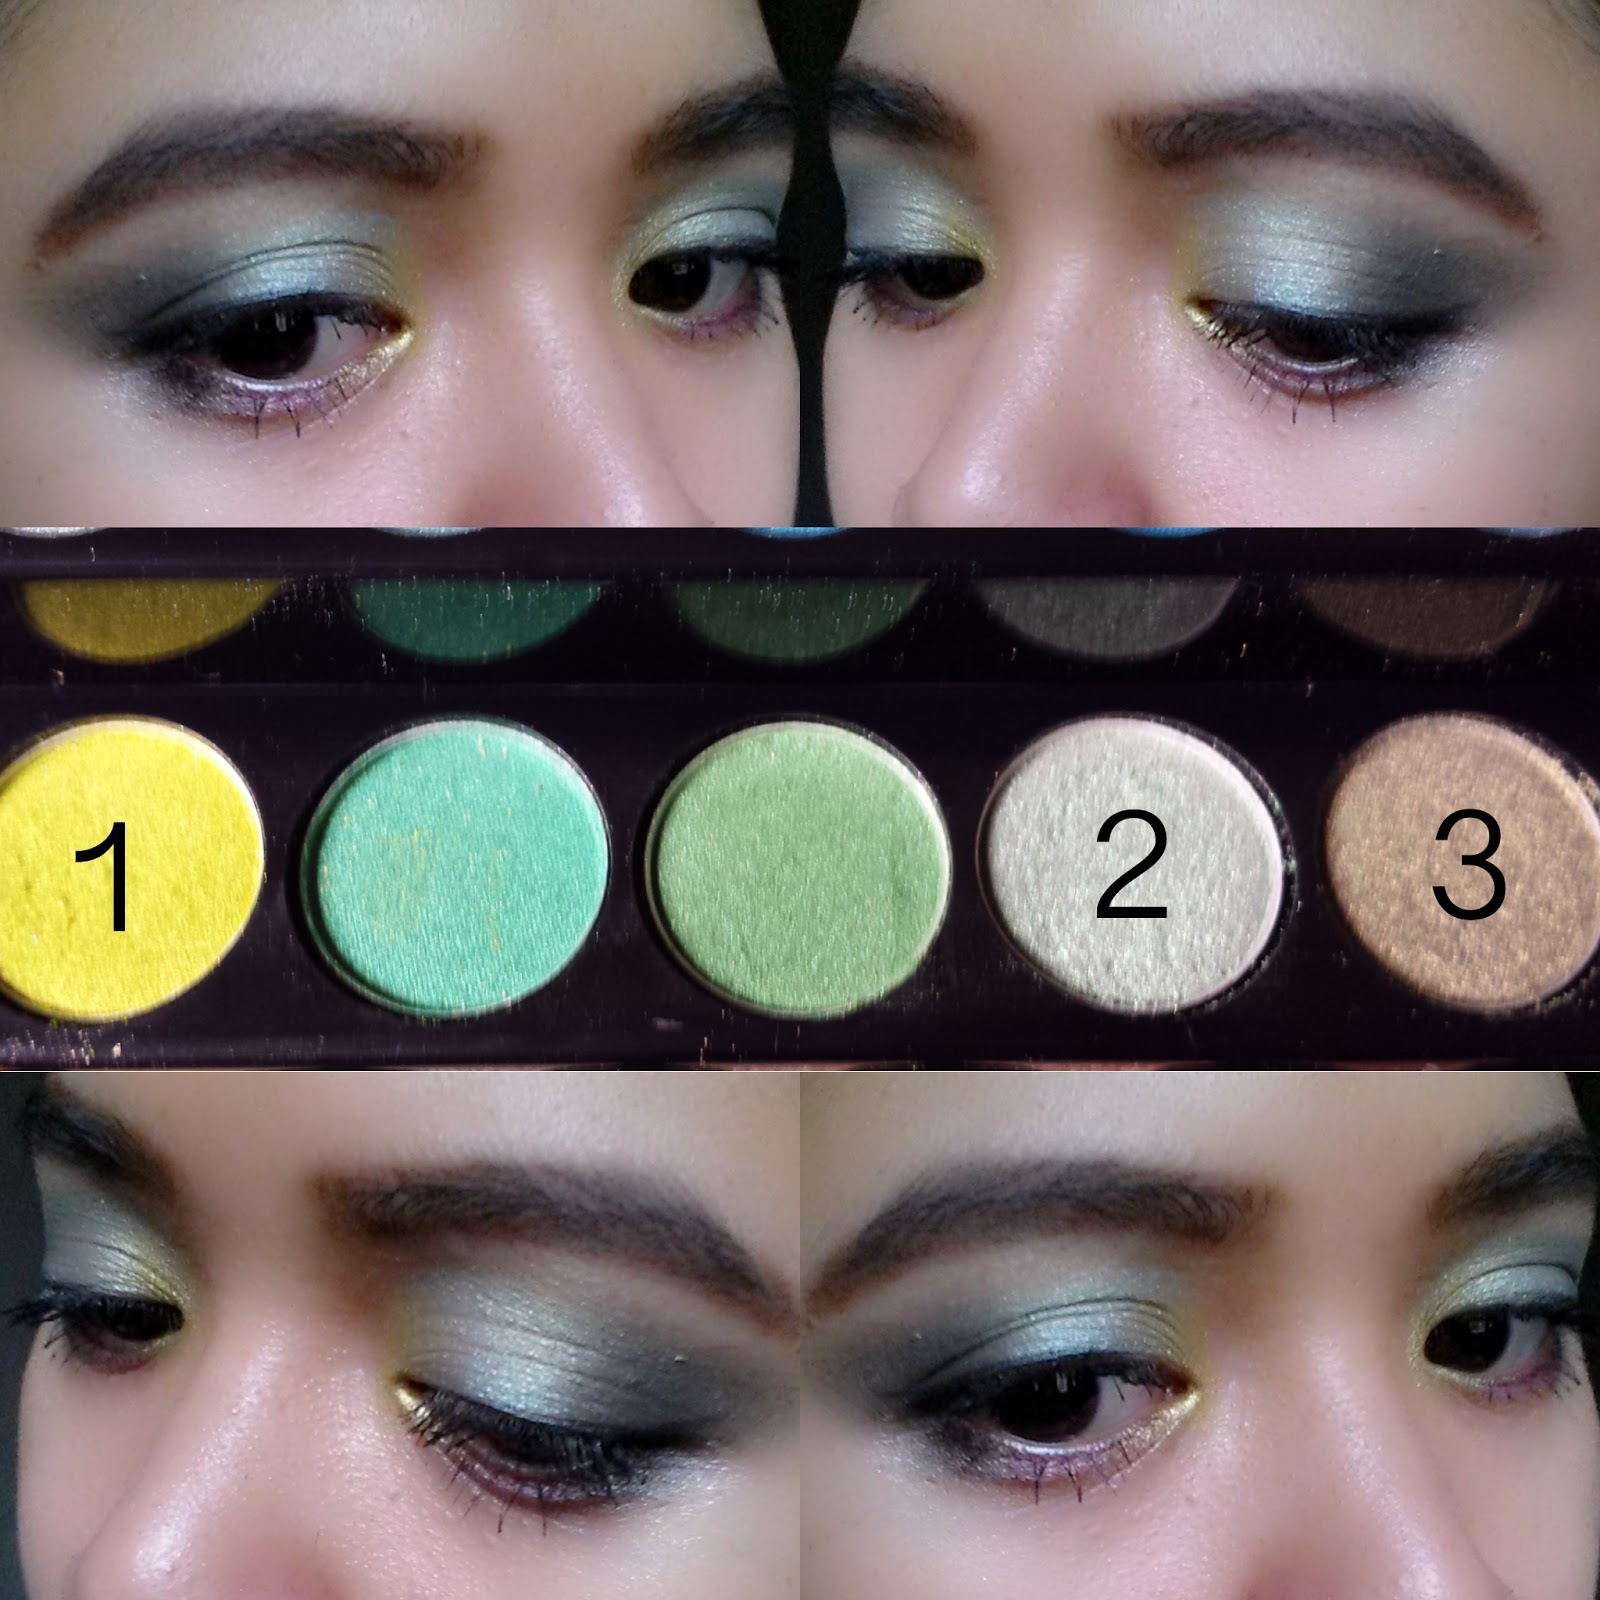 Sephora eye makeup